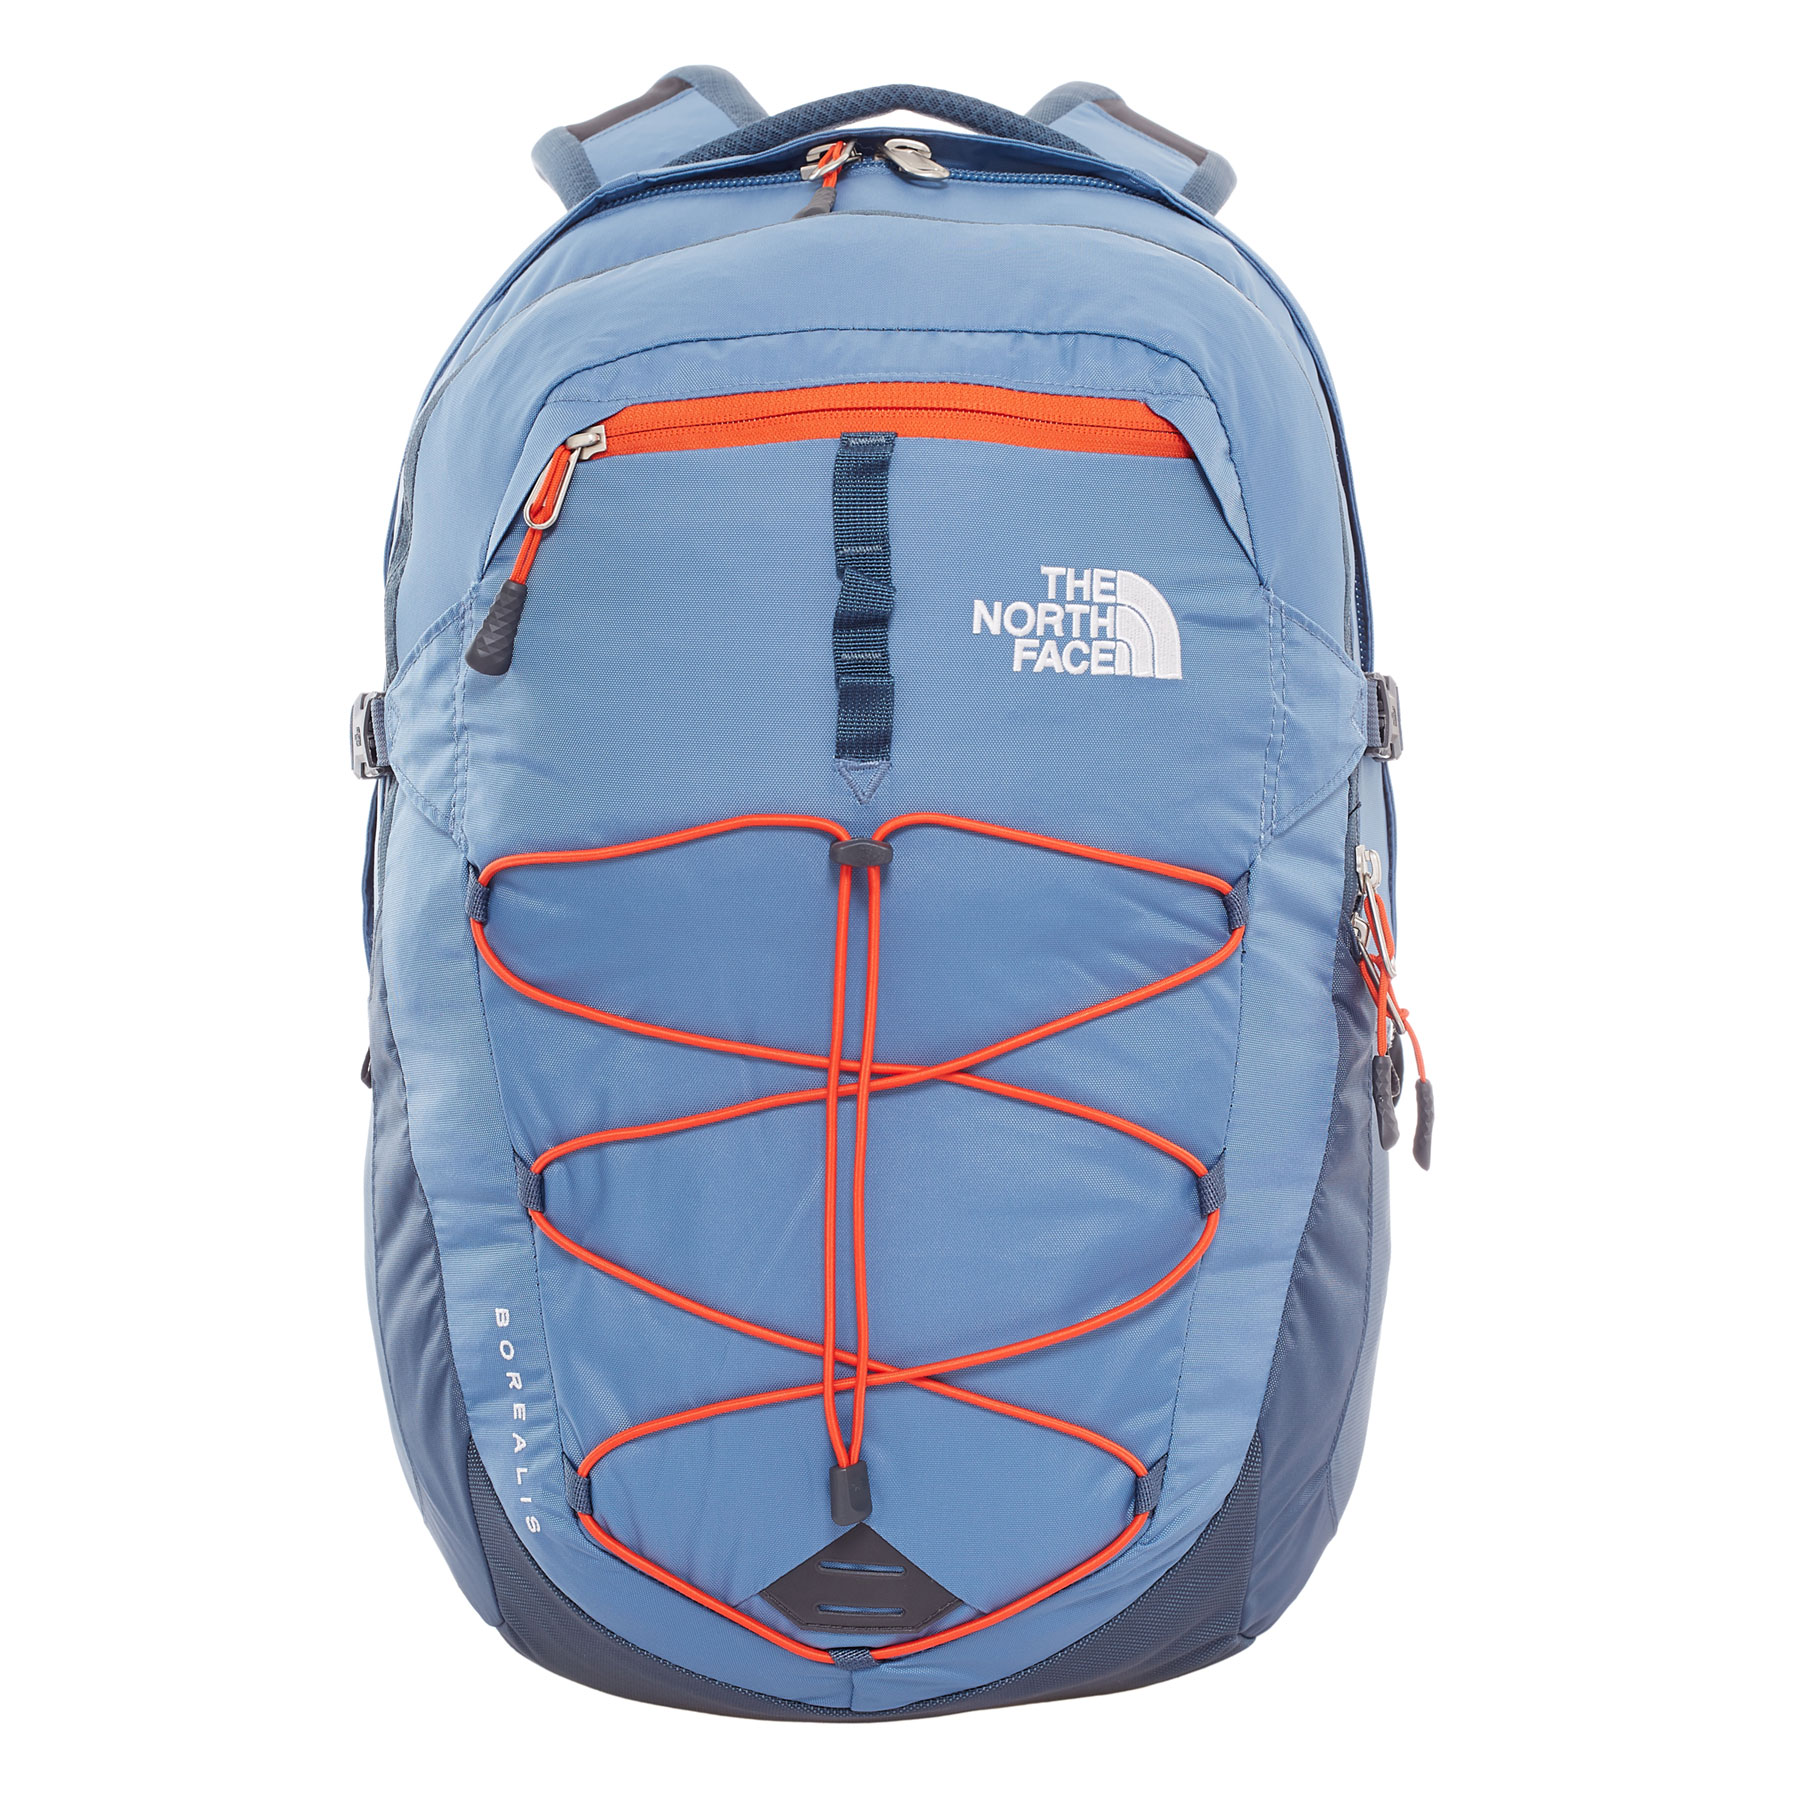 14f7a4e041 prezzo zaino the north face